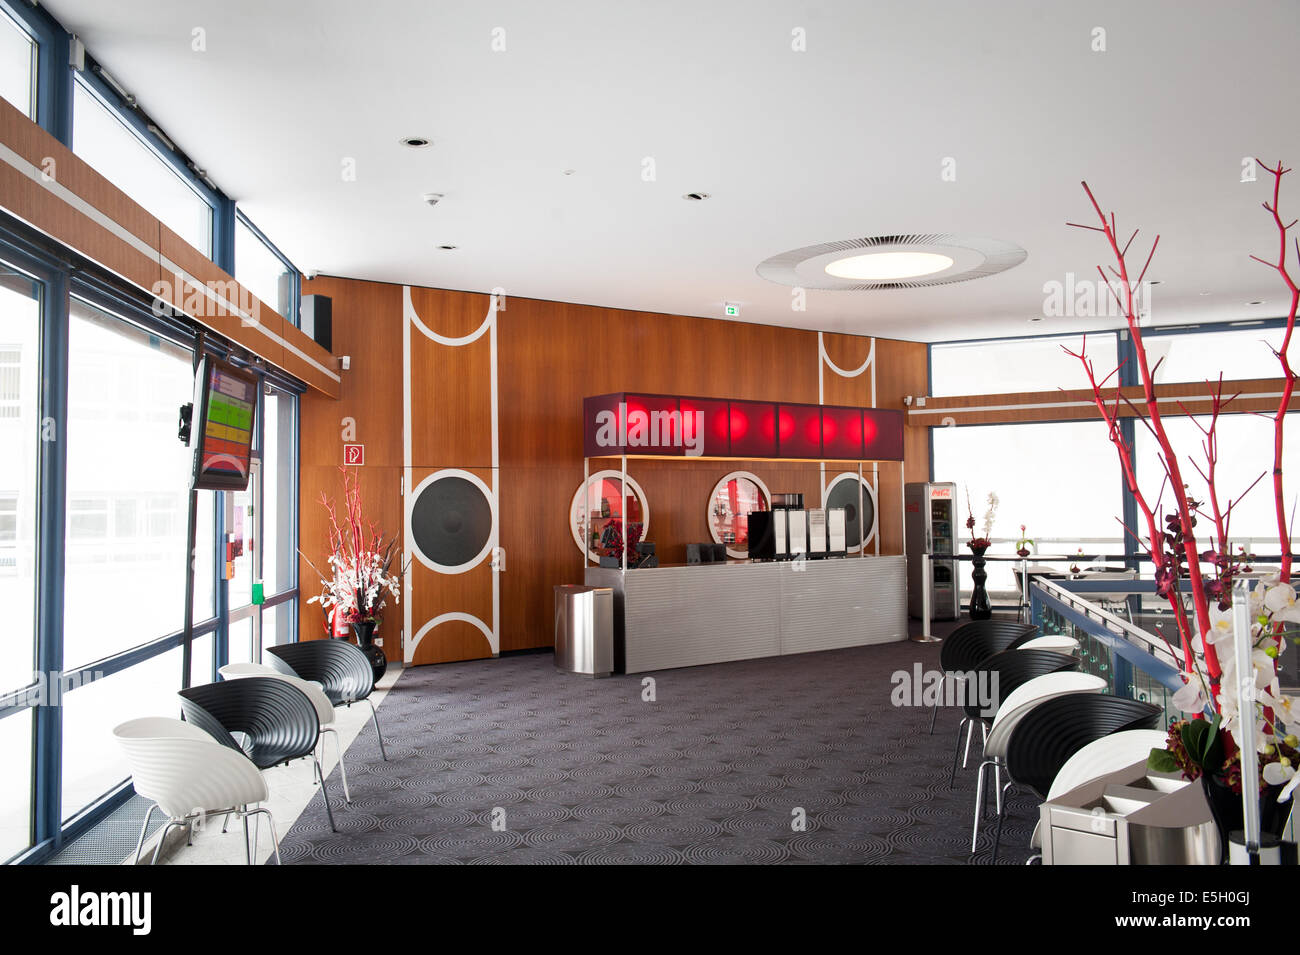 Interior Berlin Interior Reception Area Of Berlin 39s Iconic Tv Tower Or